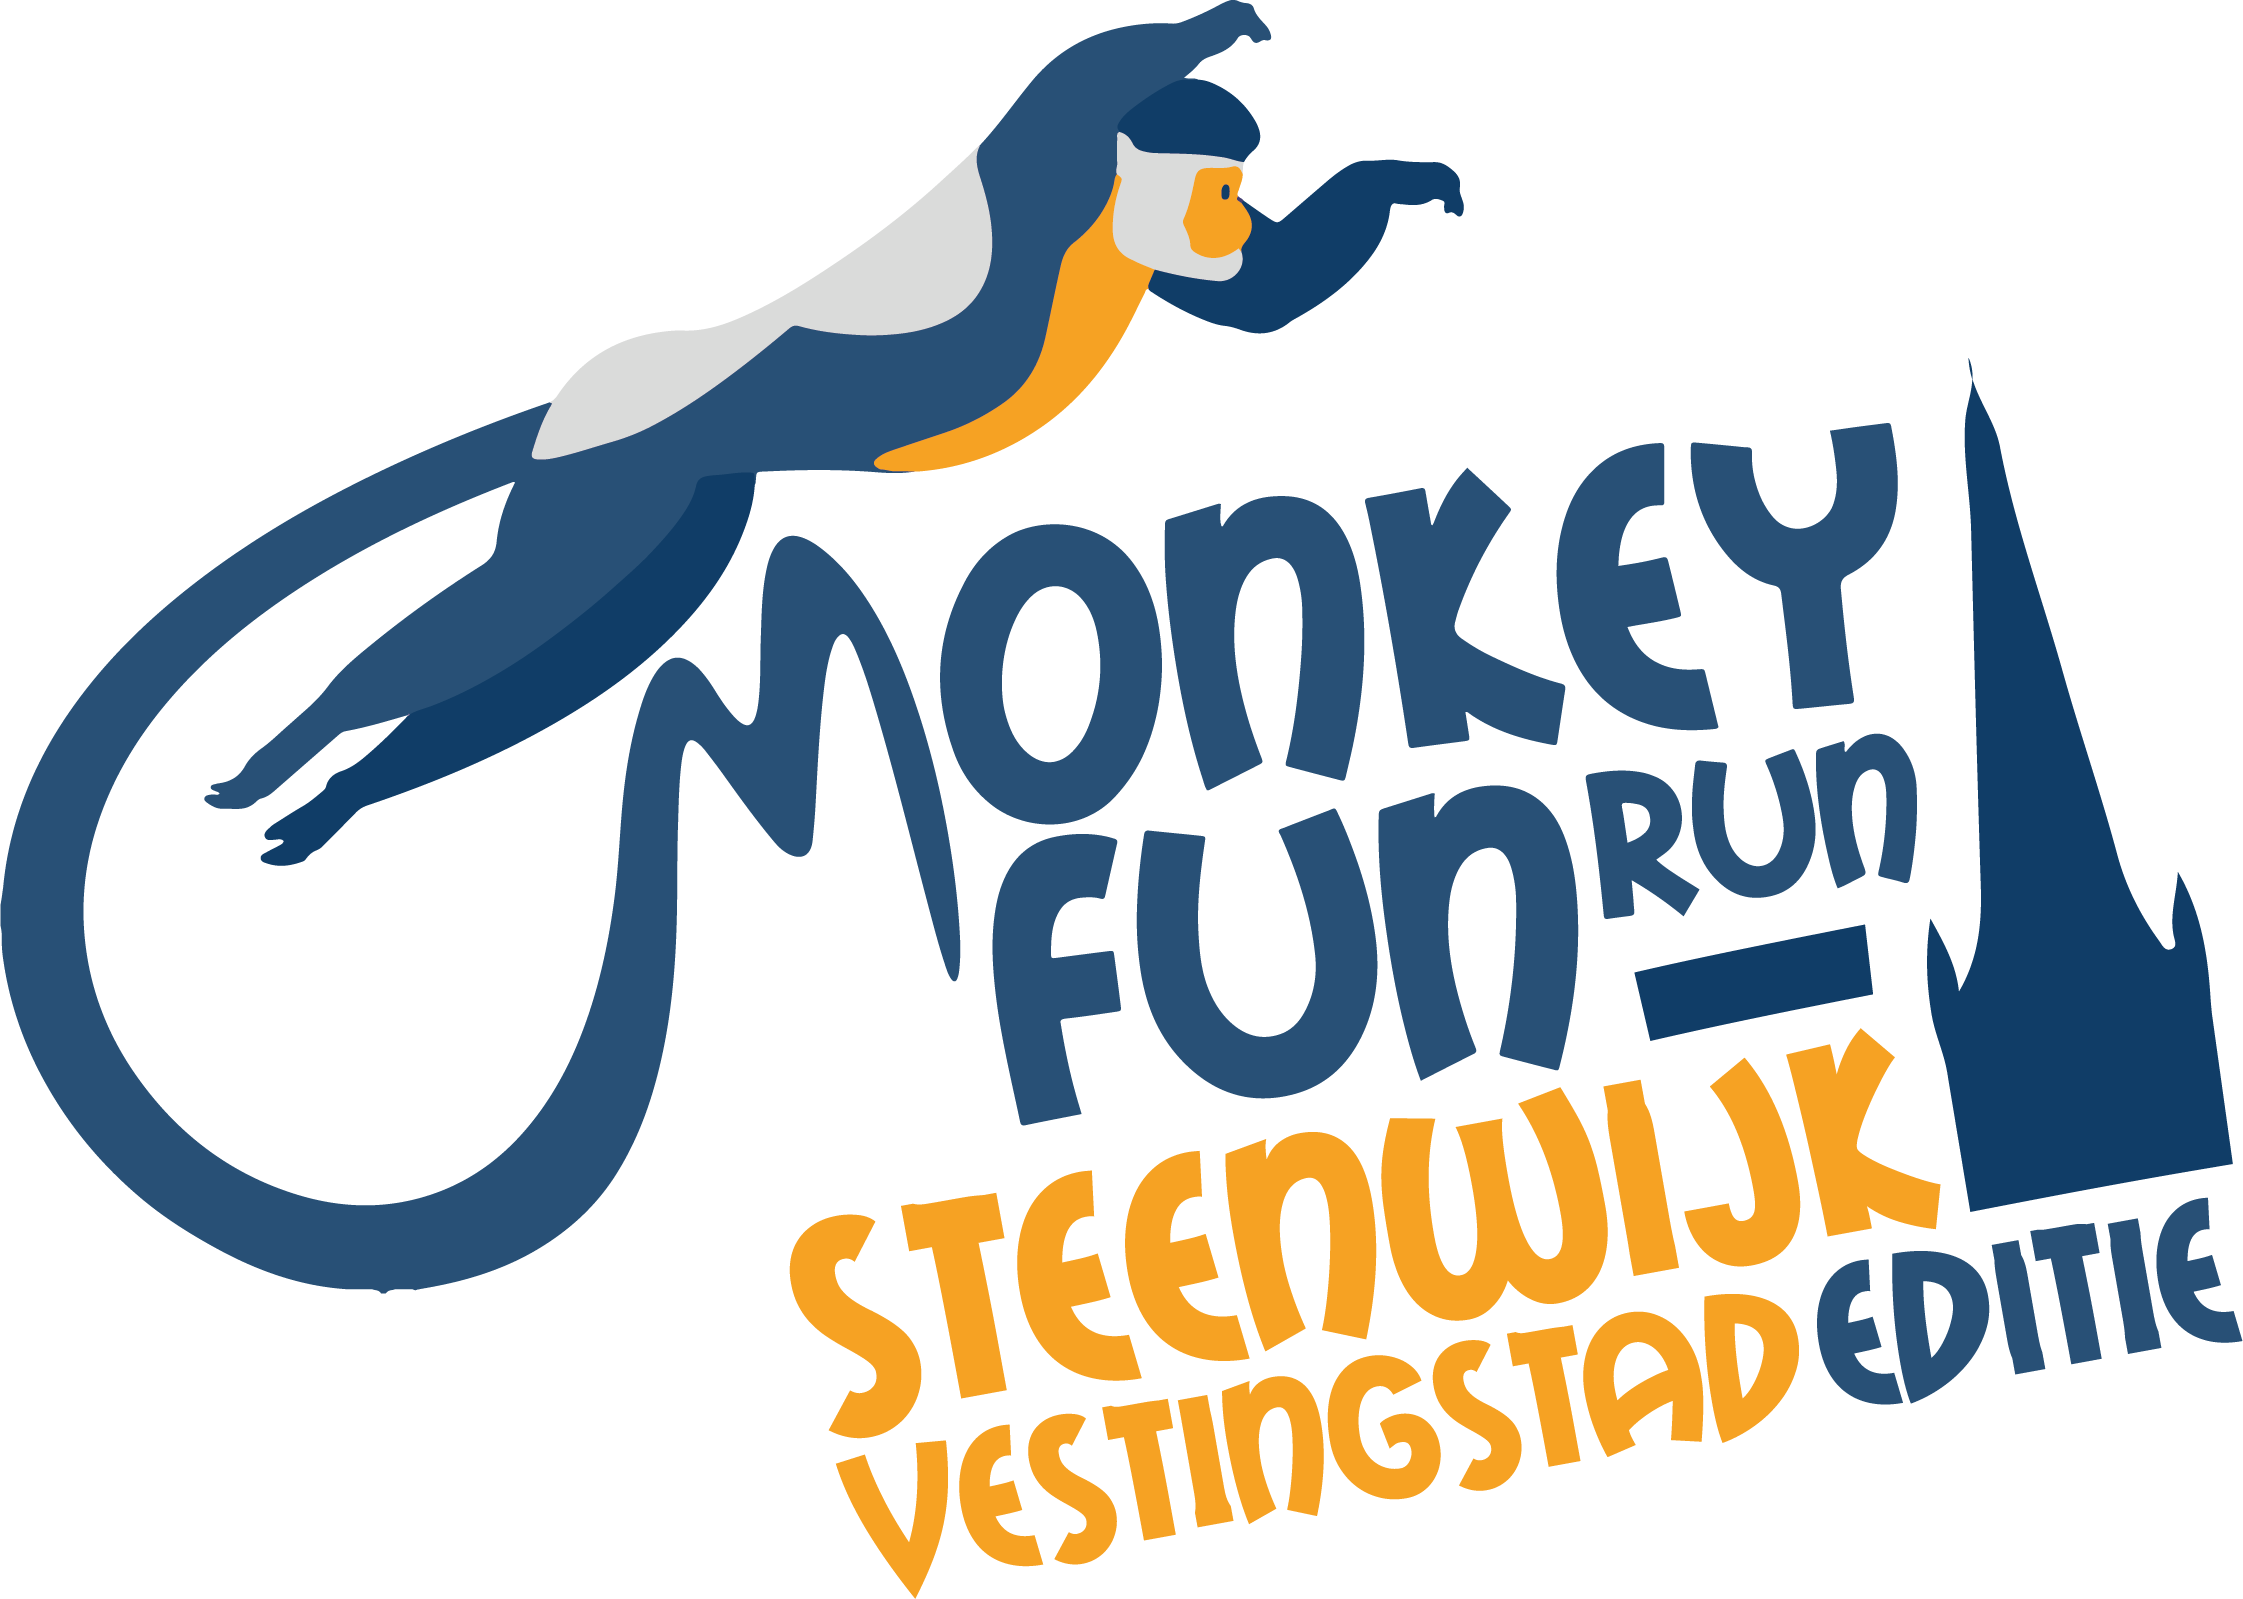 Monkey Fun Run Steenwijk Vestingstad Editie 300ppi